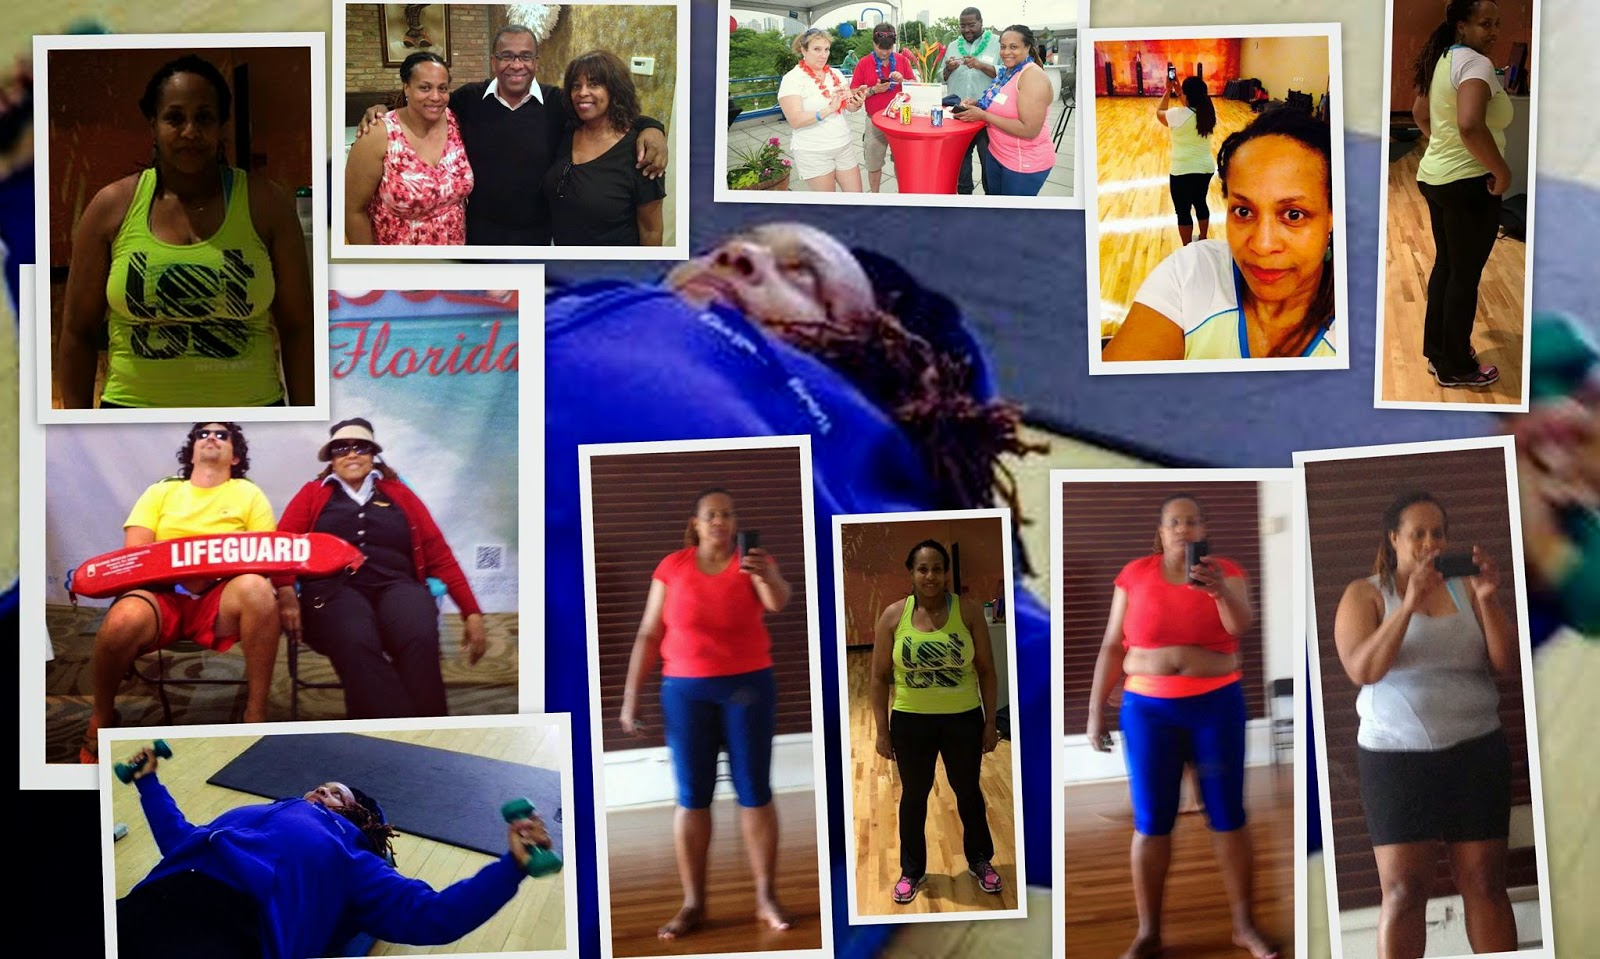 Janice's Weightloss Progress May 2014 to February 2015